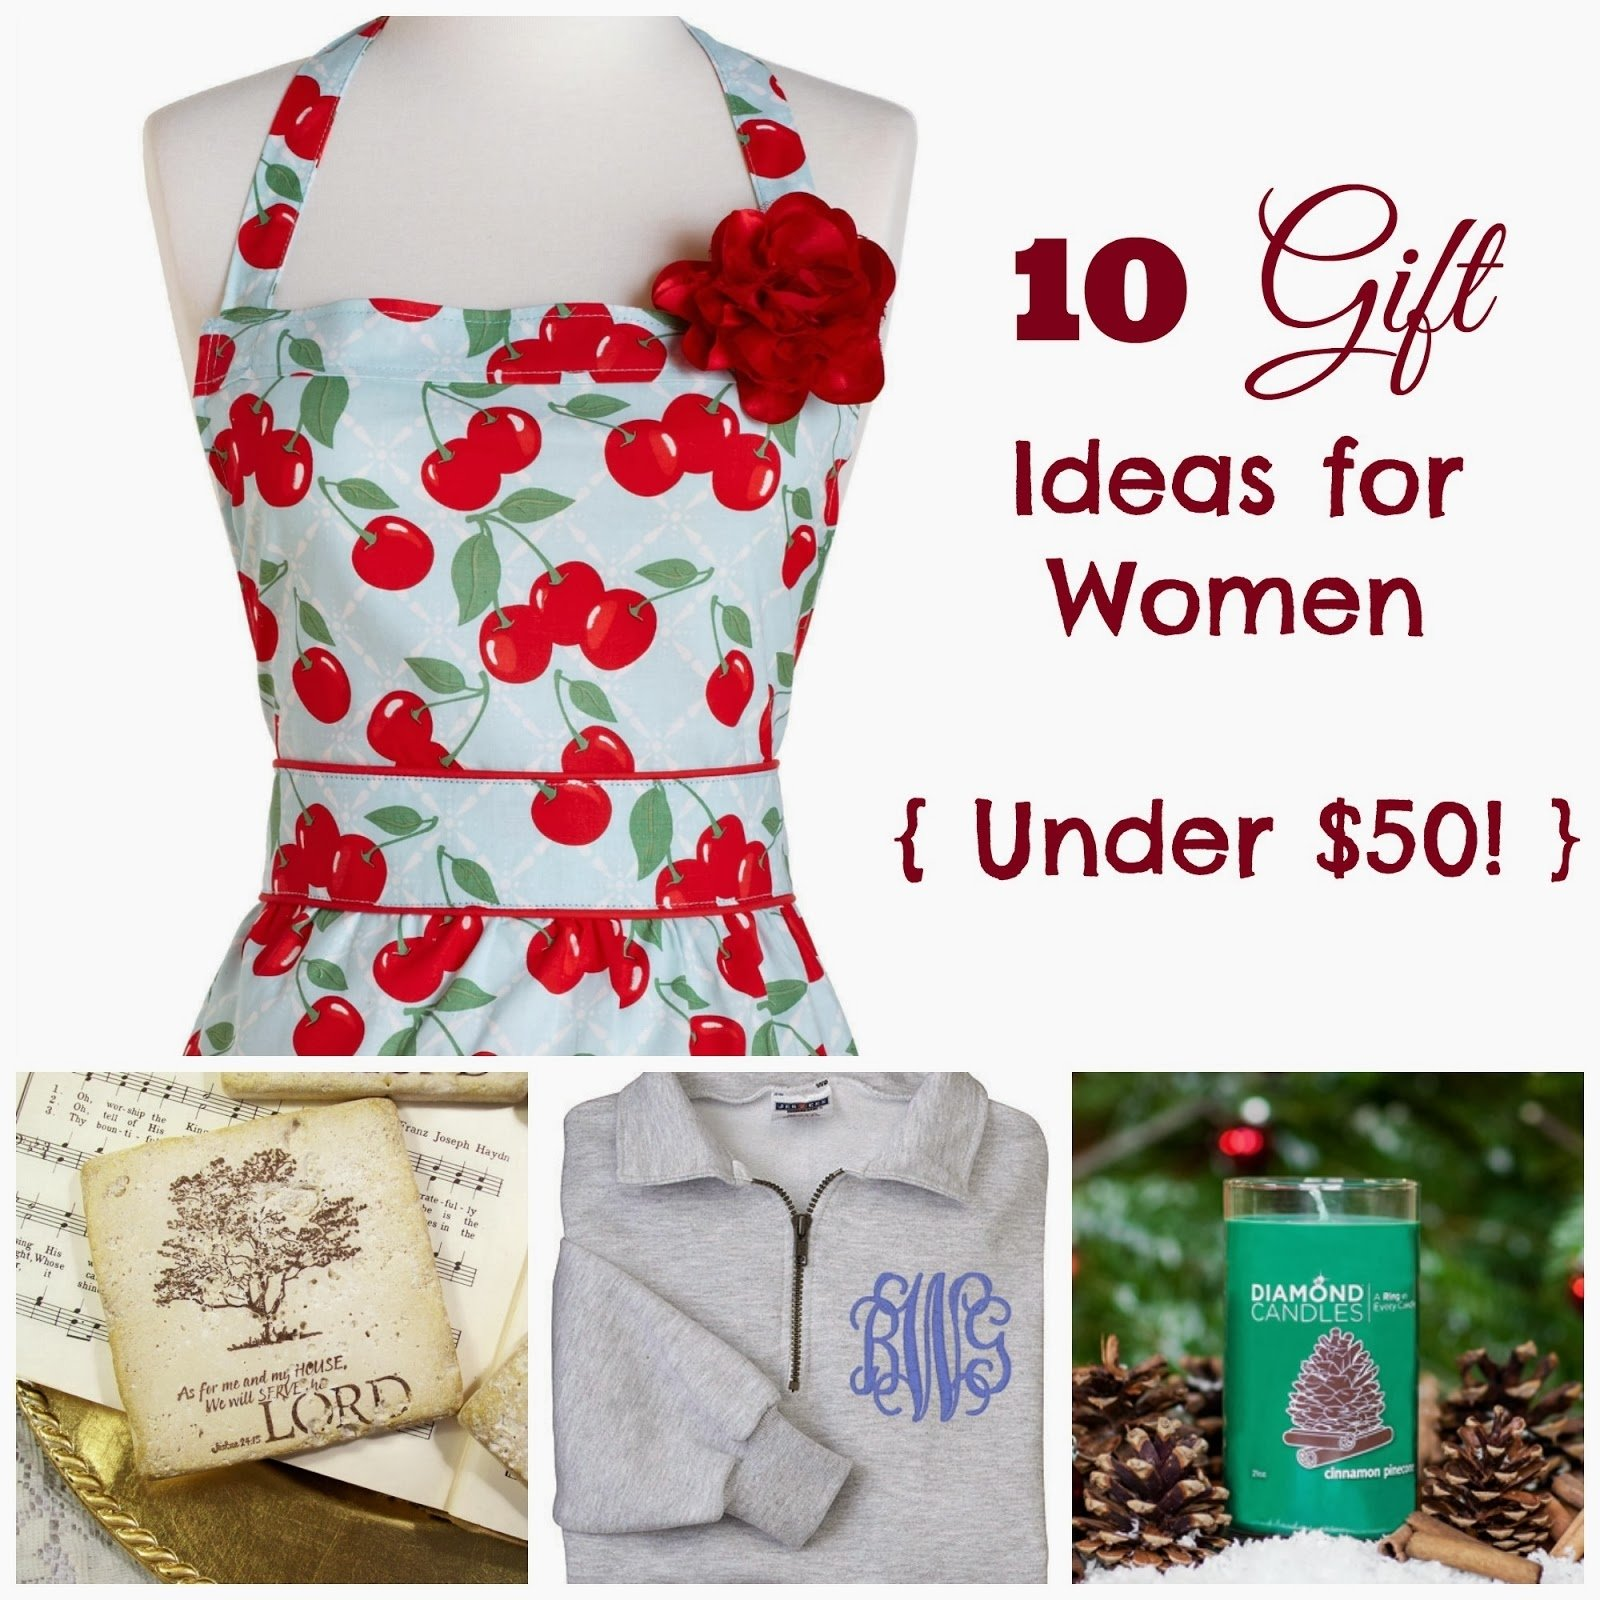 10 Great 2013 Gift Ideas For Women where joy is 10 gift ideas for women under 50 2020